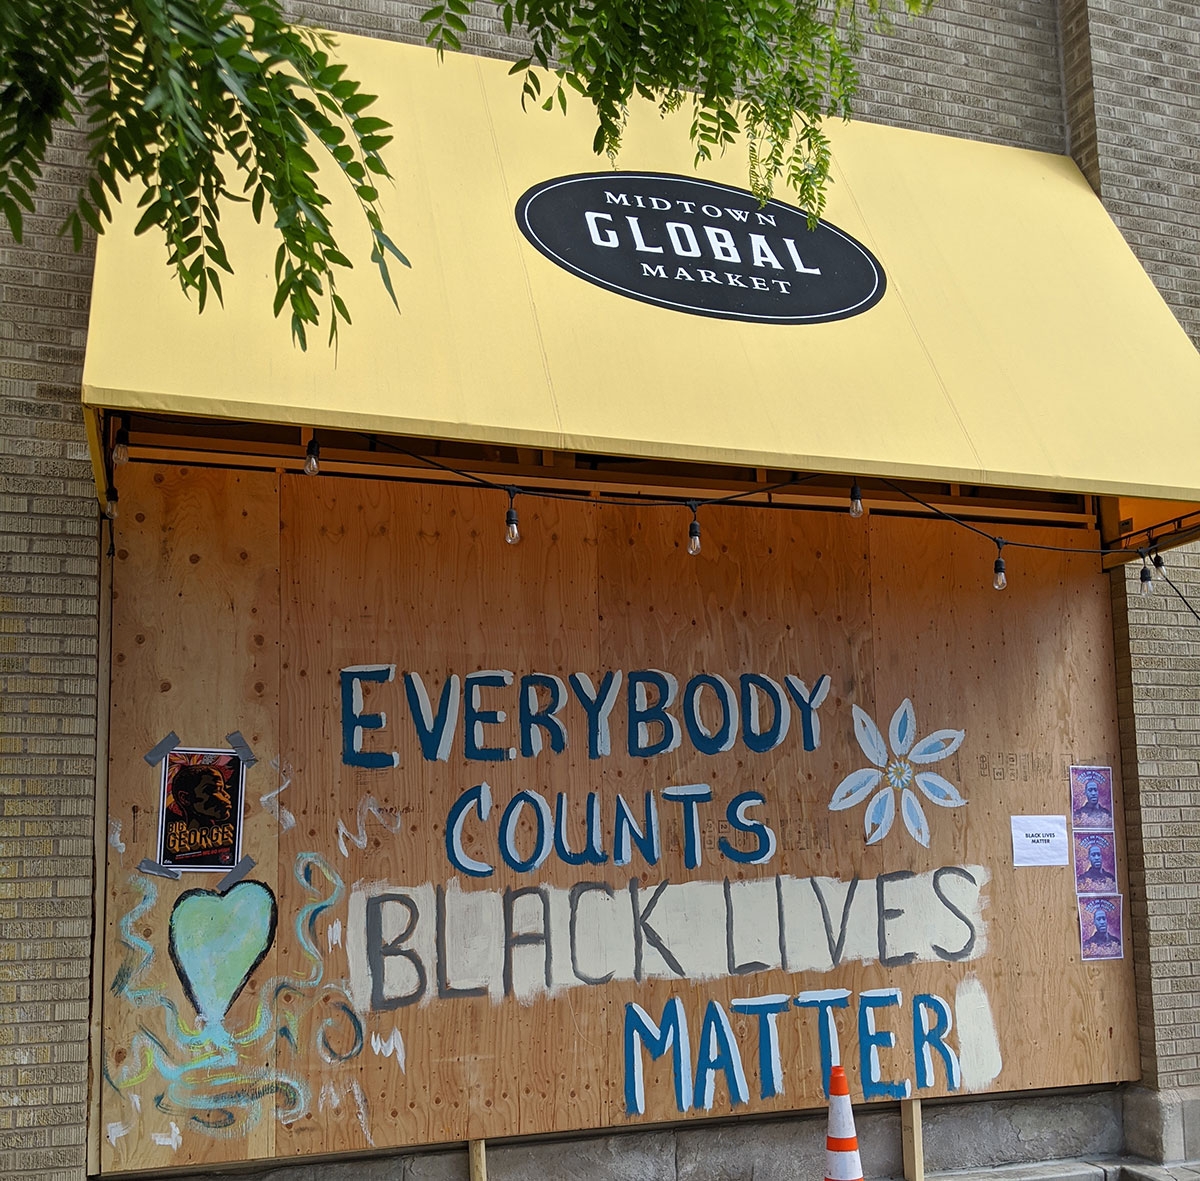 Midtown Global Market Black Lives Matter